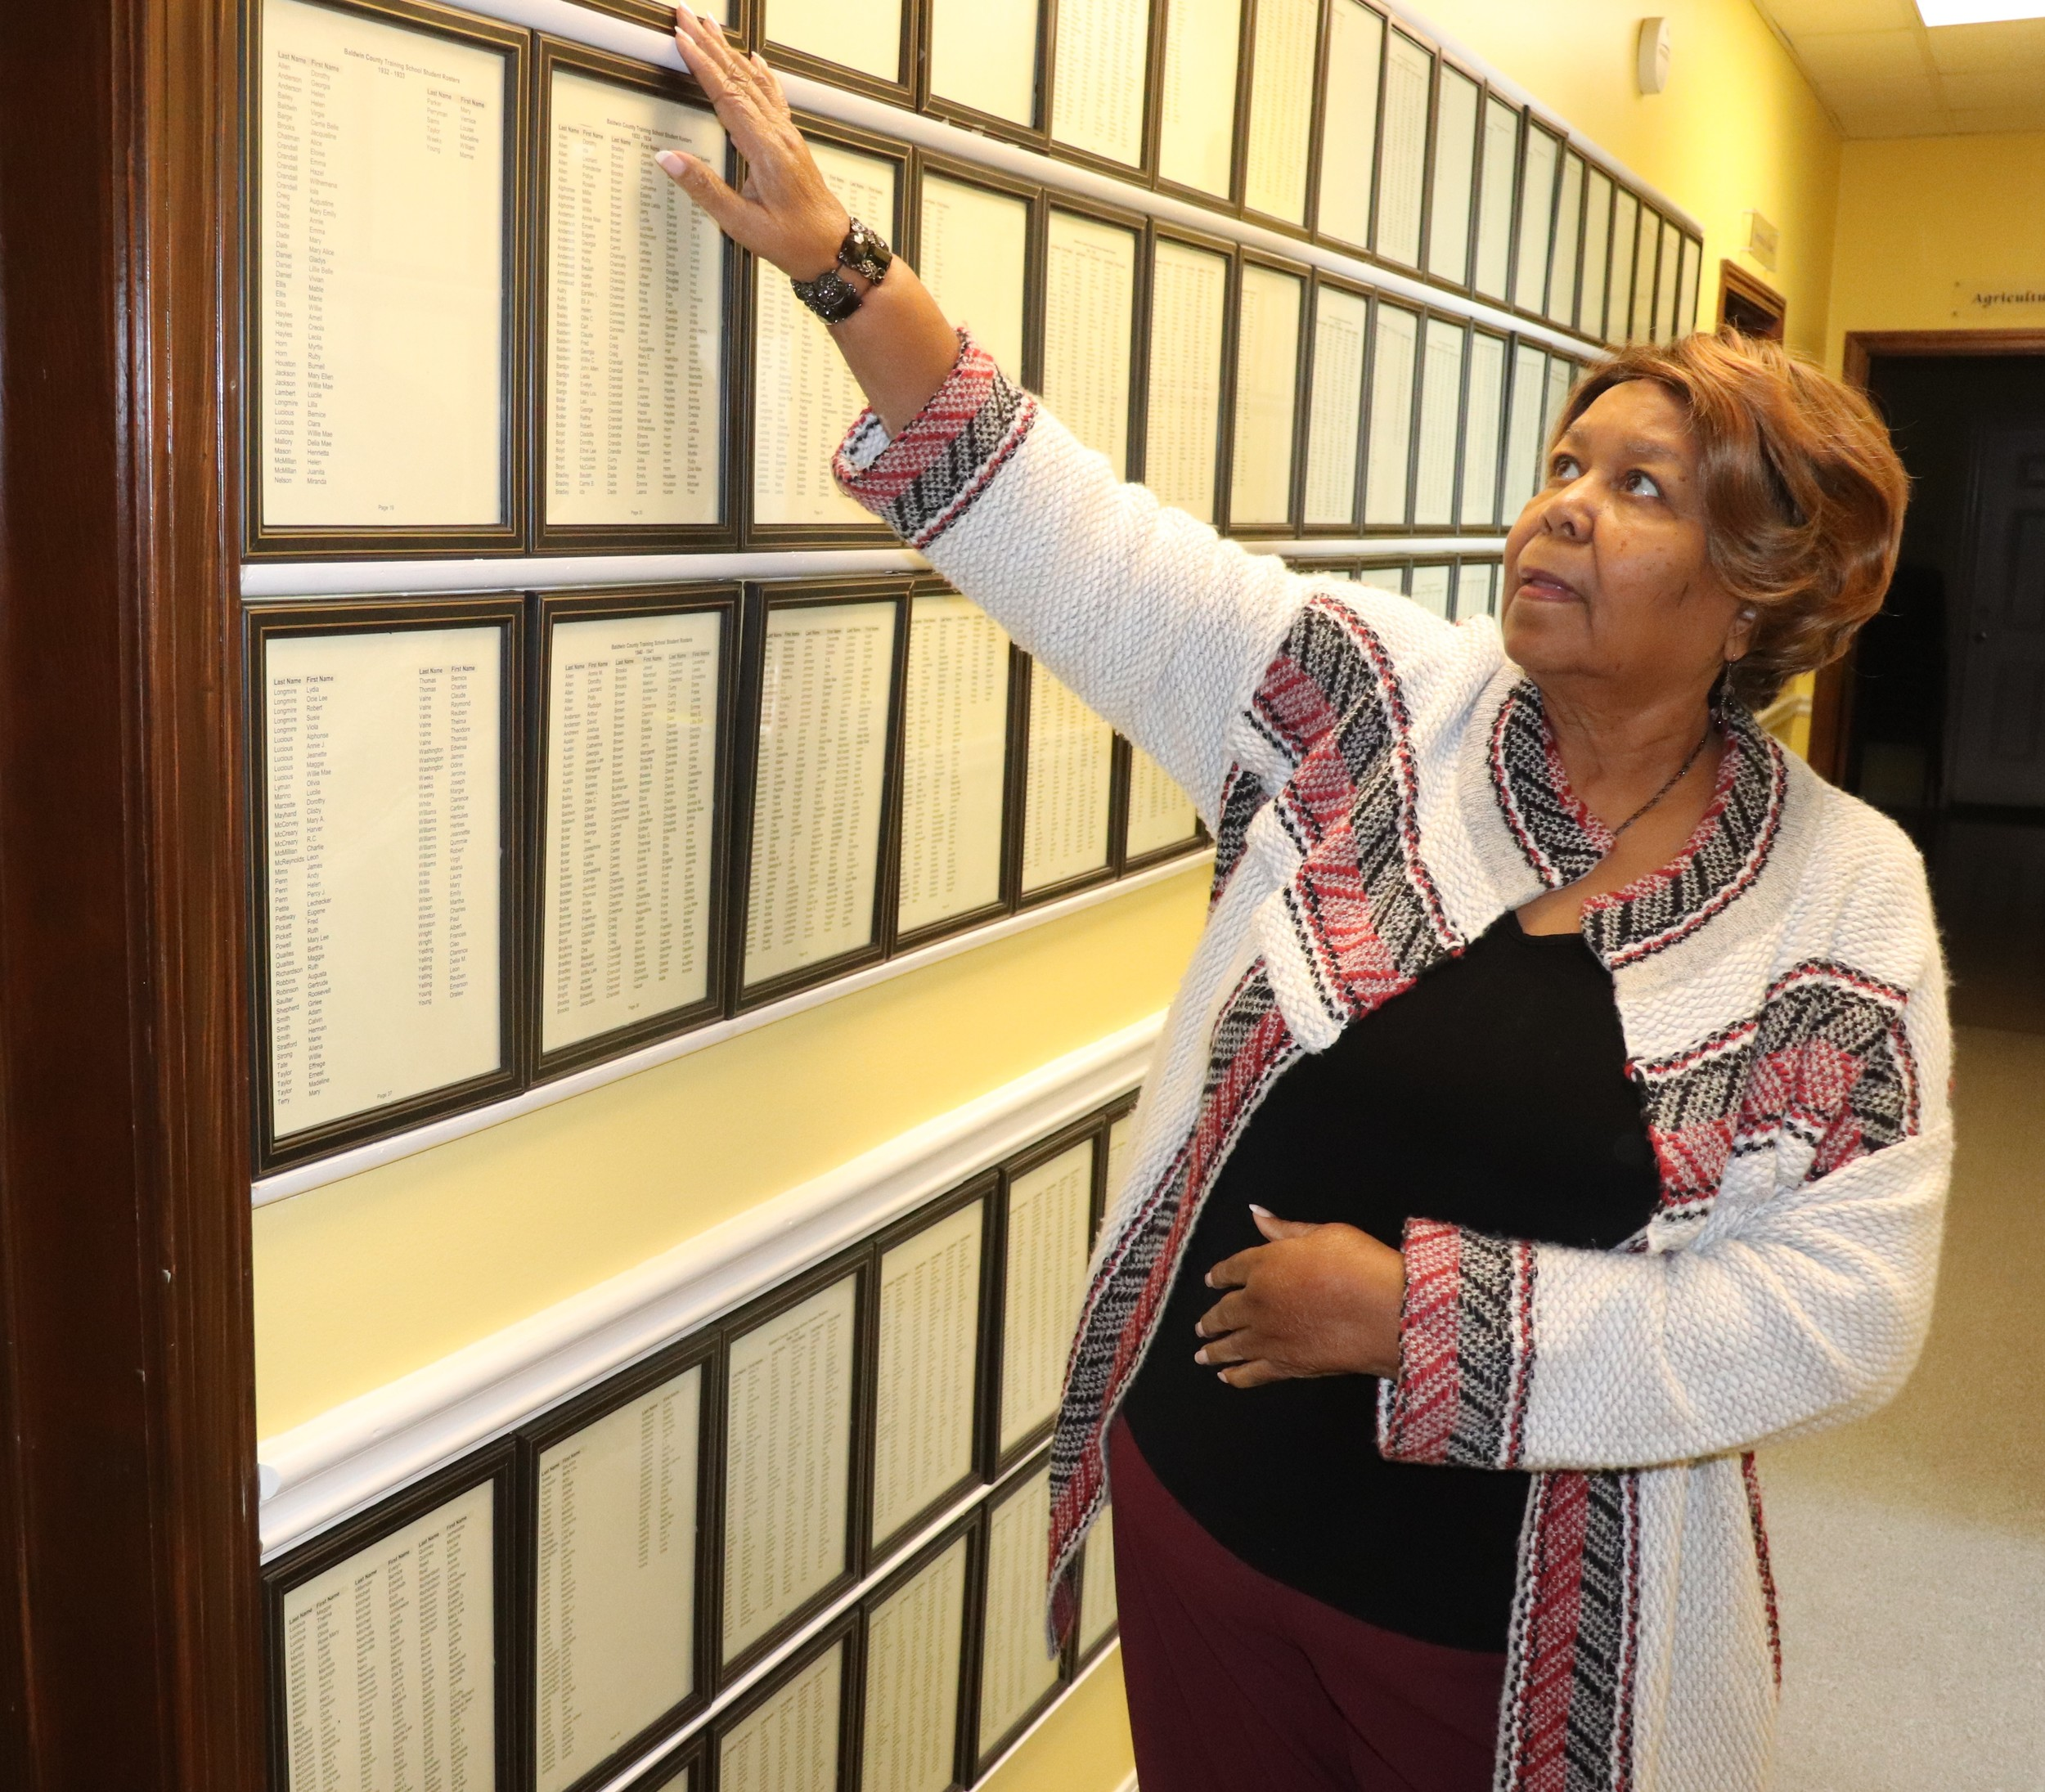 Gartrell Agee looks over the names of every student who attended the Baldwin County Training School. Registers were kept beginning in 1918. Under years were there are few names, it means the crops were good and children skipped school to help with the harvest. In years with plentiful students, the crops failed.